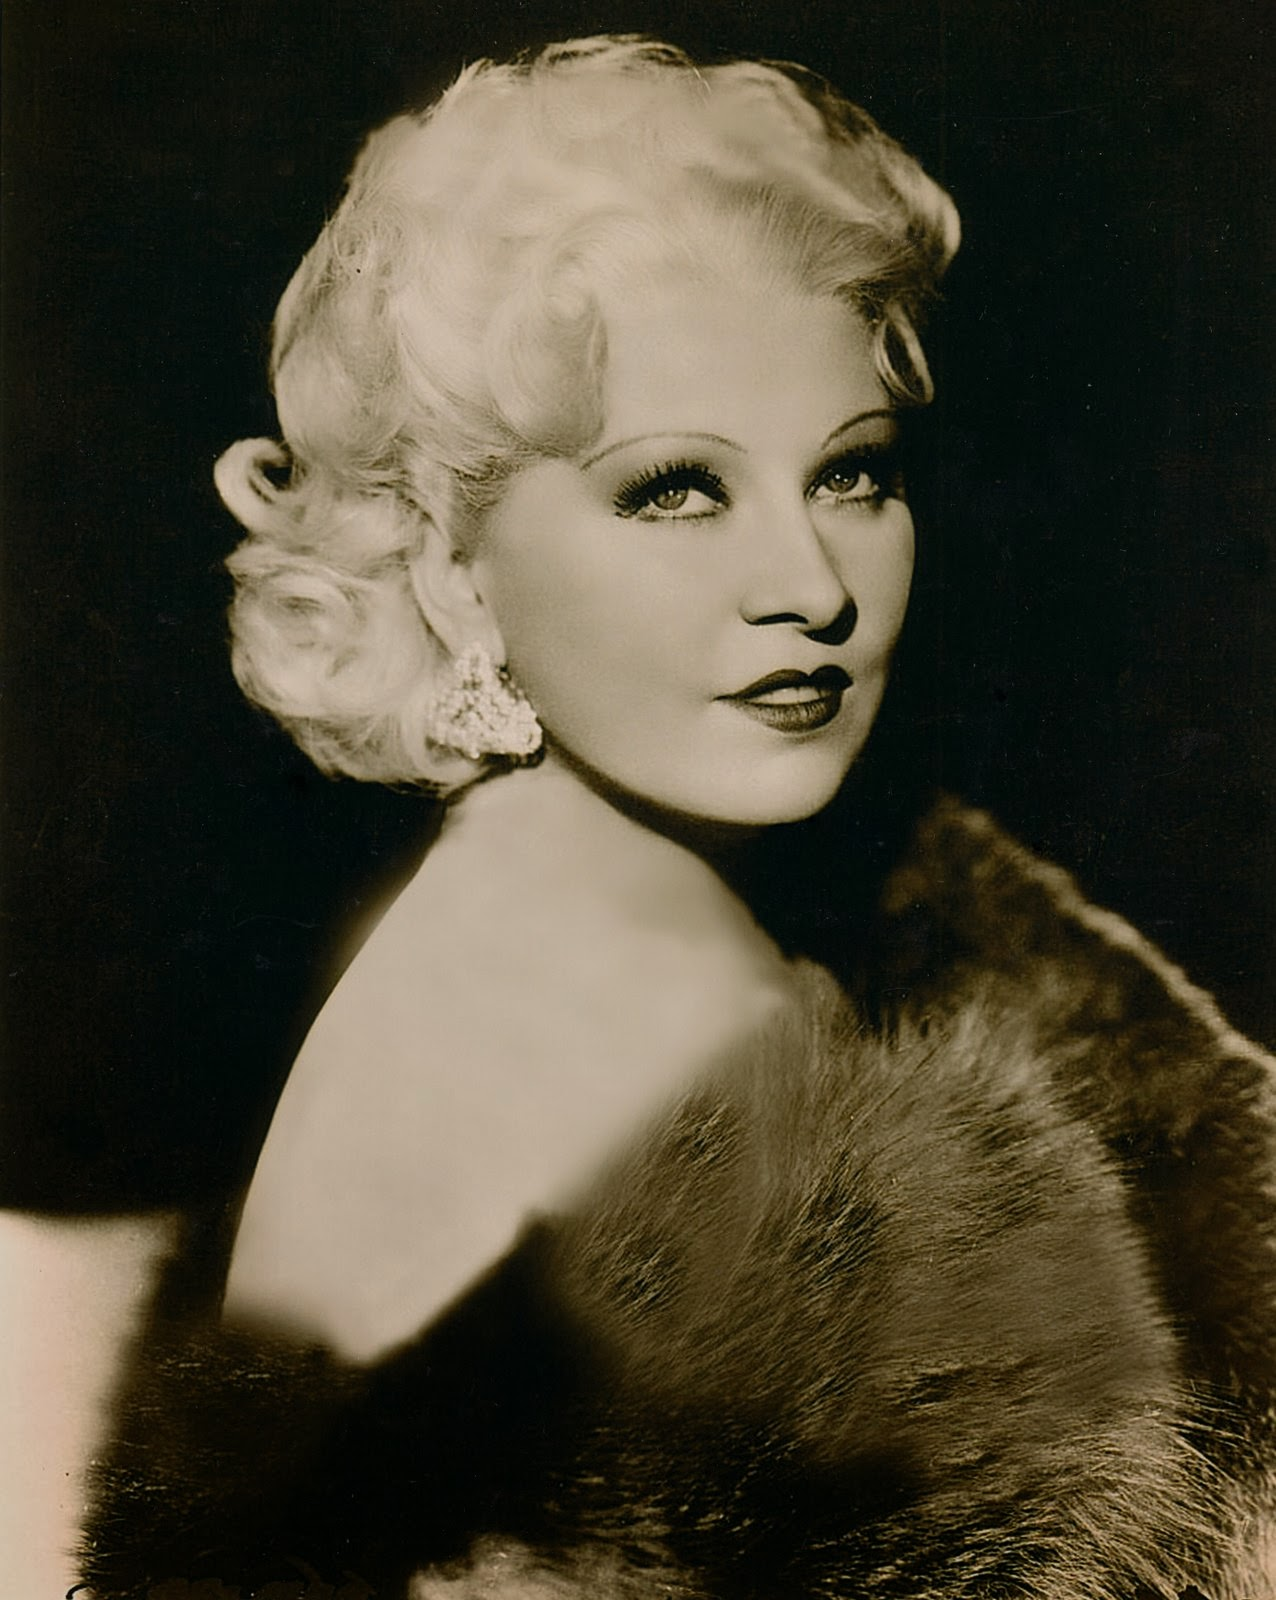 A VERY LUSH BUDGET: MAE WEST ALWAYS THE BEST : The Early Years : RARE MAE WEST PHOTOS AND ...